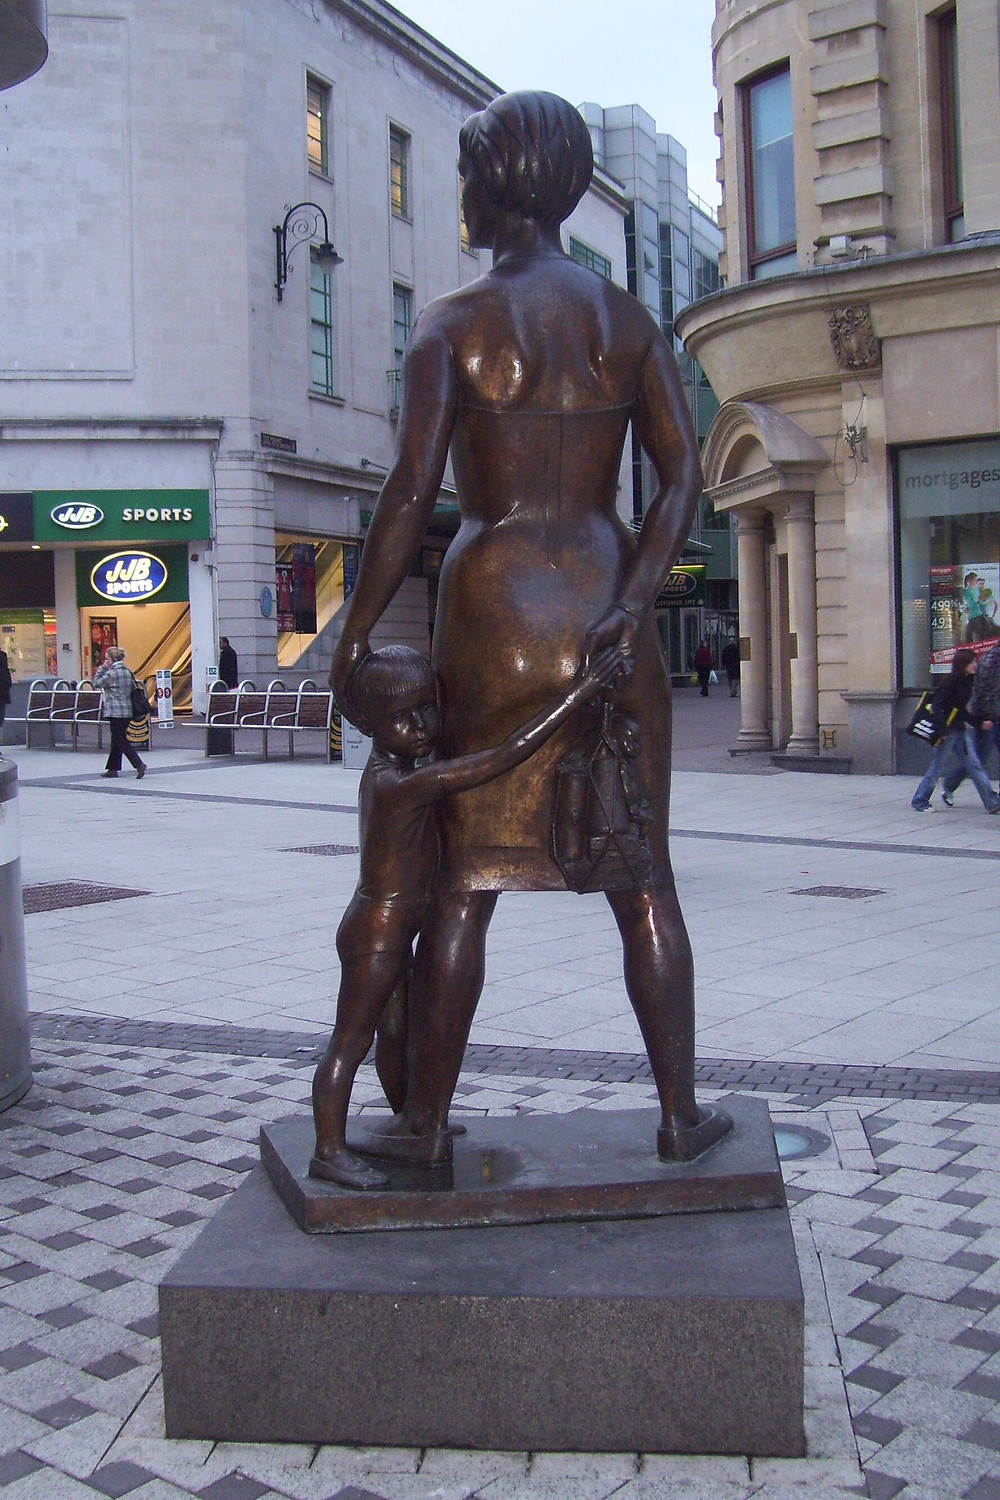 The reverse side of the Mother and Son sculpture on Queen St in Cardiff